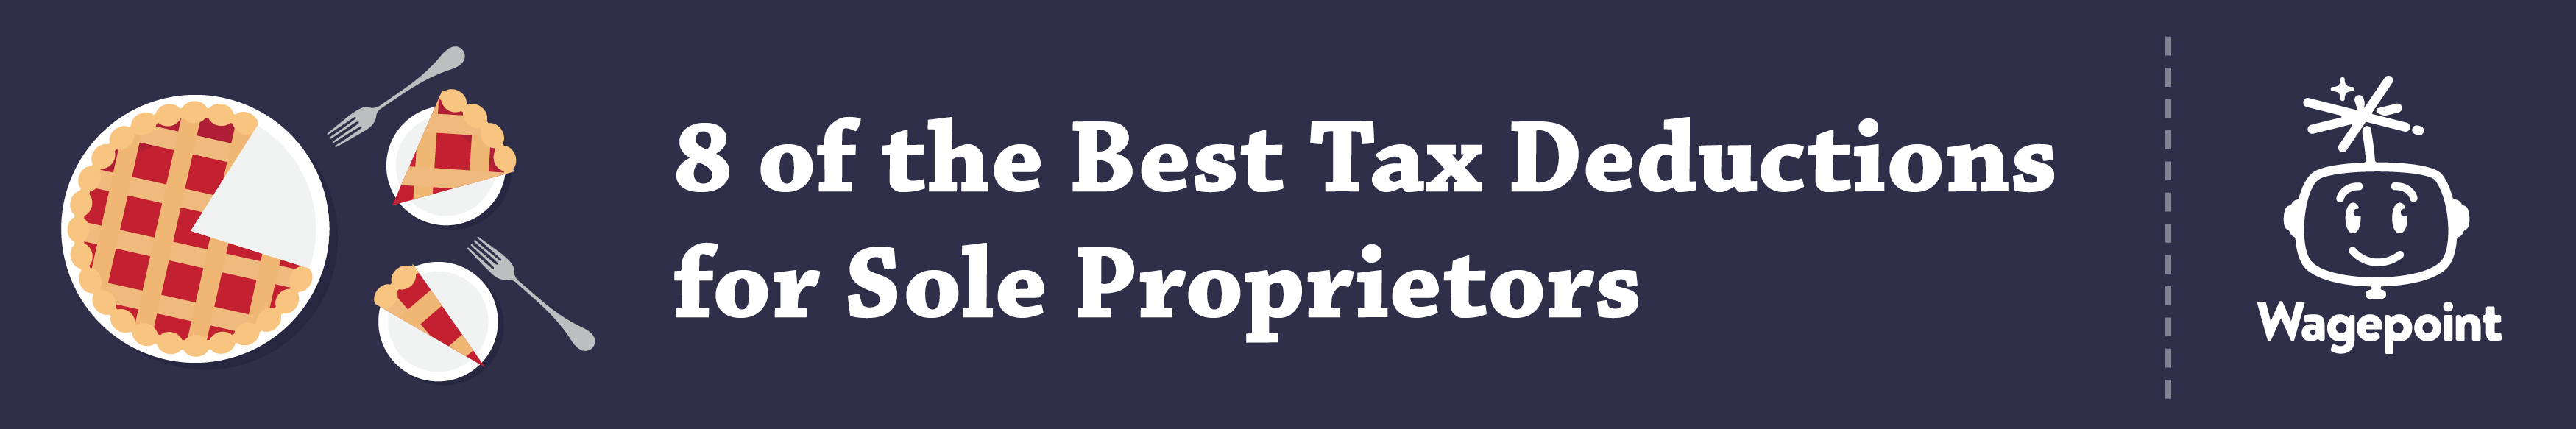 How to file sole proprietorship taxes the practical guide lines a and b principal business or profession including product or service and principal business or professional activity code fandeluxe Gallery